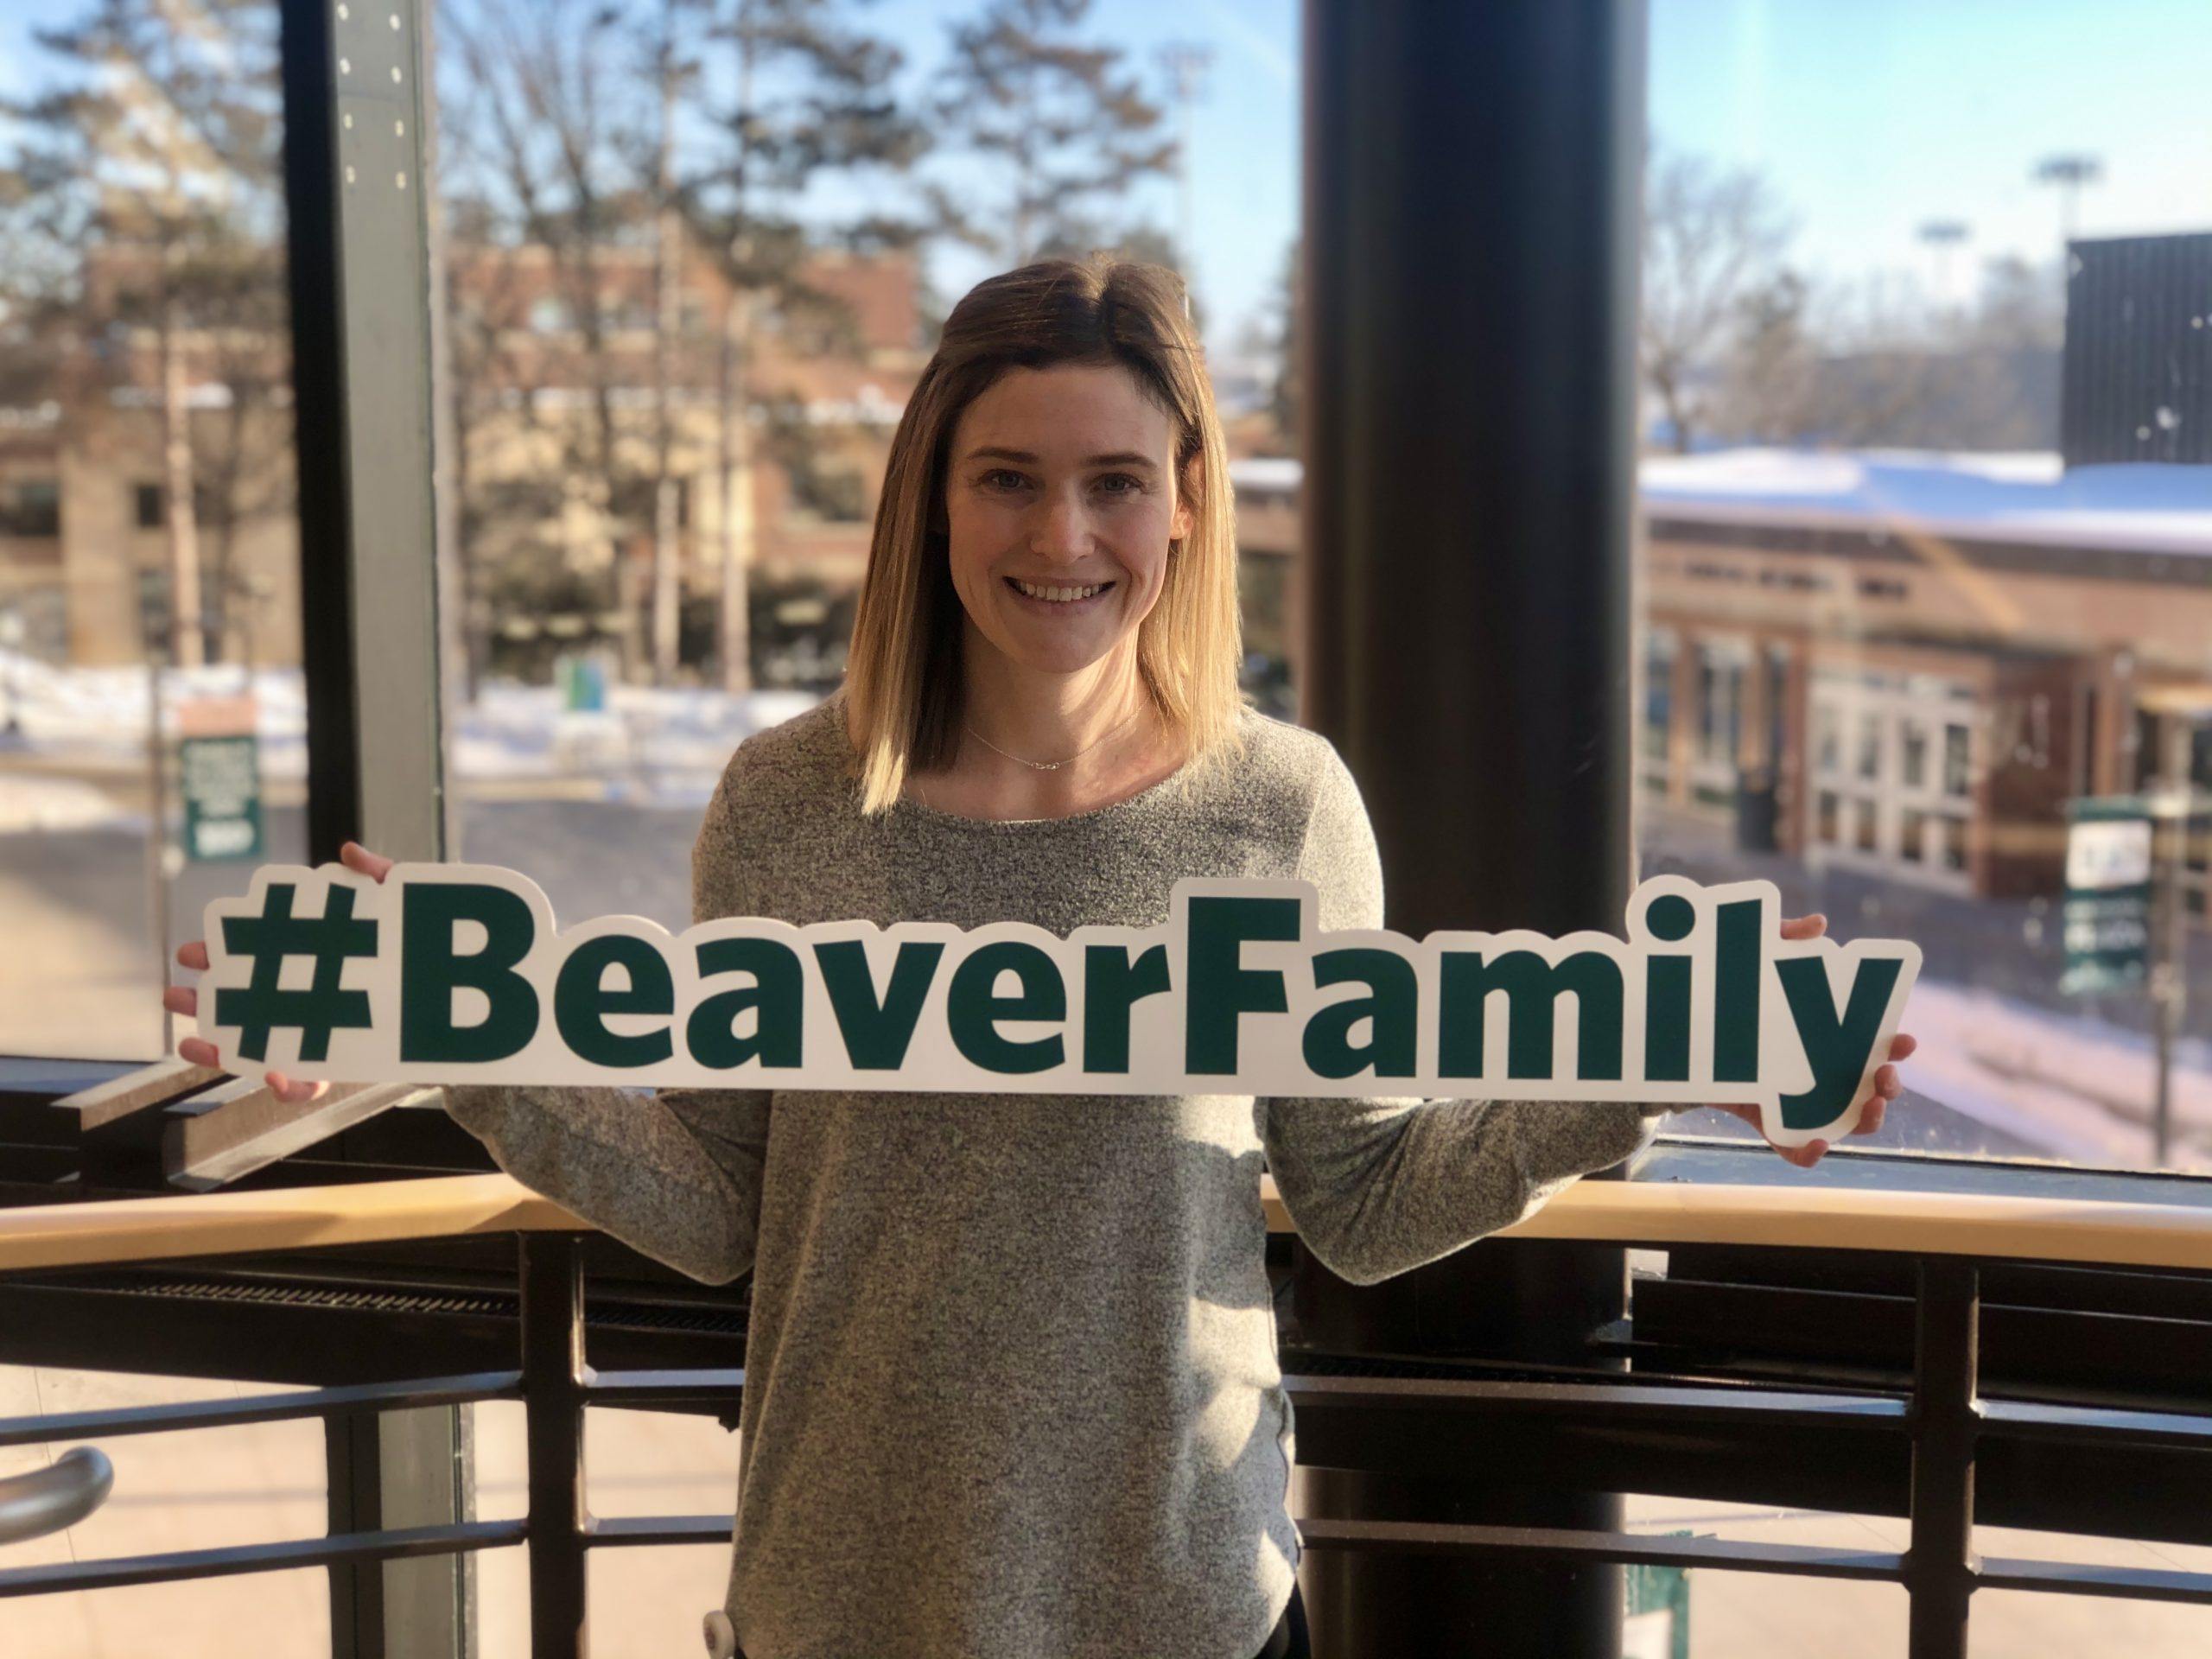 Bemidji State Celebrates the Beaver Family During Annual Employee Recognition Ceremony